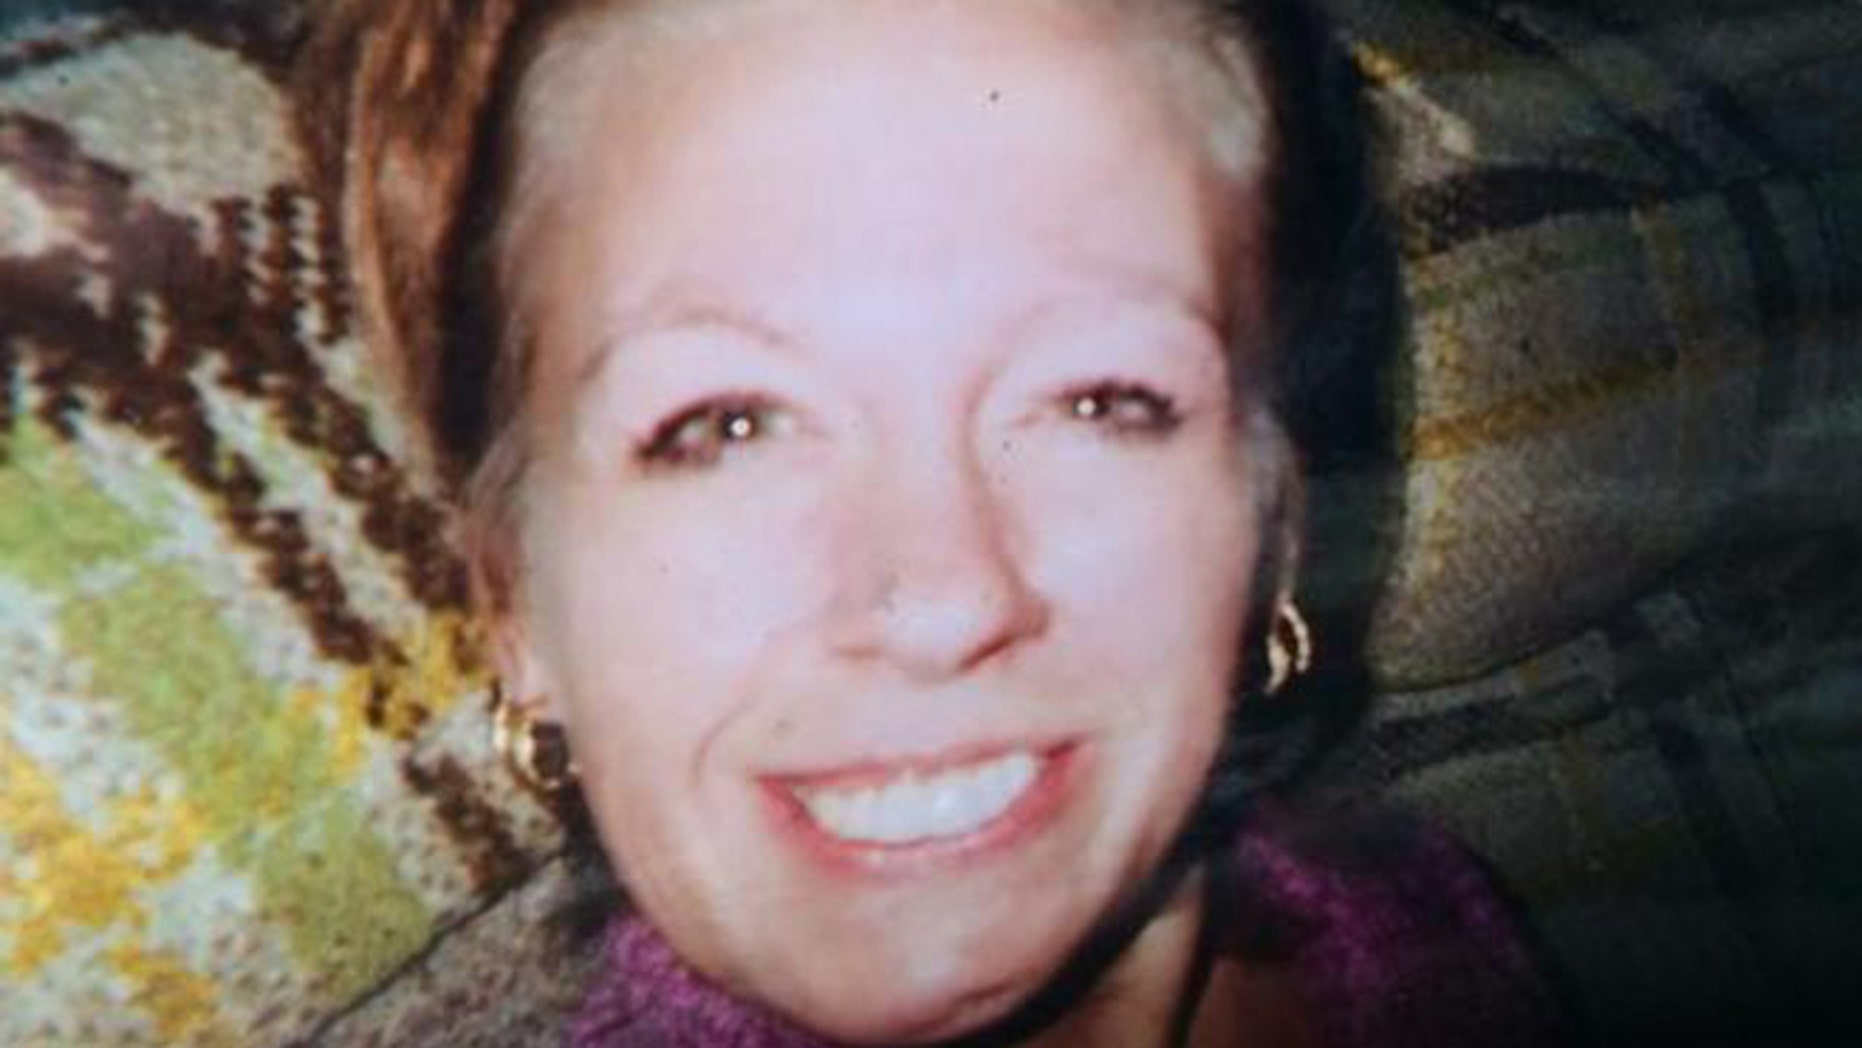 Terri Bills, whose dismembered body was discovered June 16, is pictured here in an undated photo provided by police.